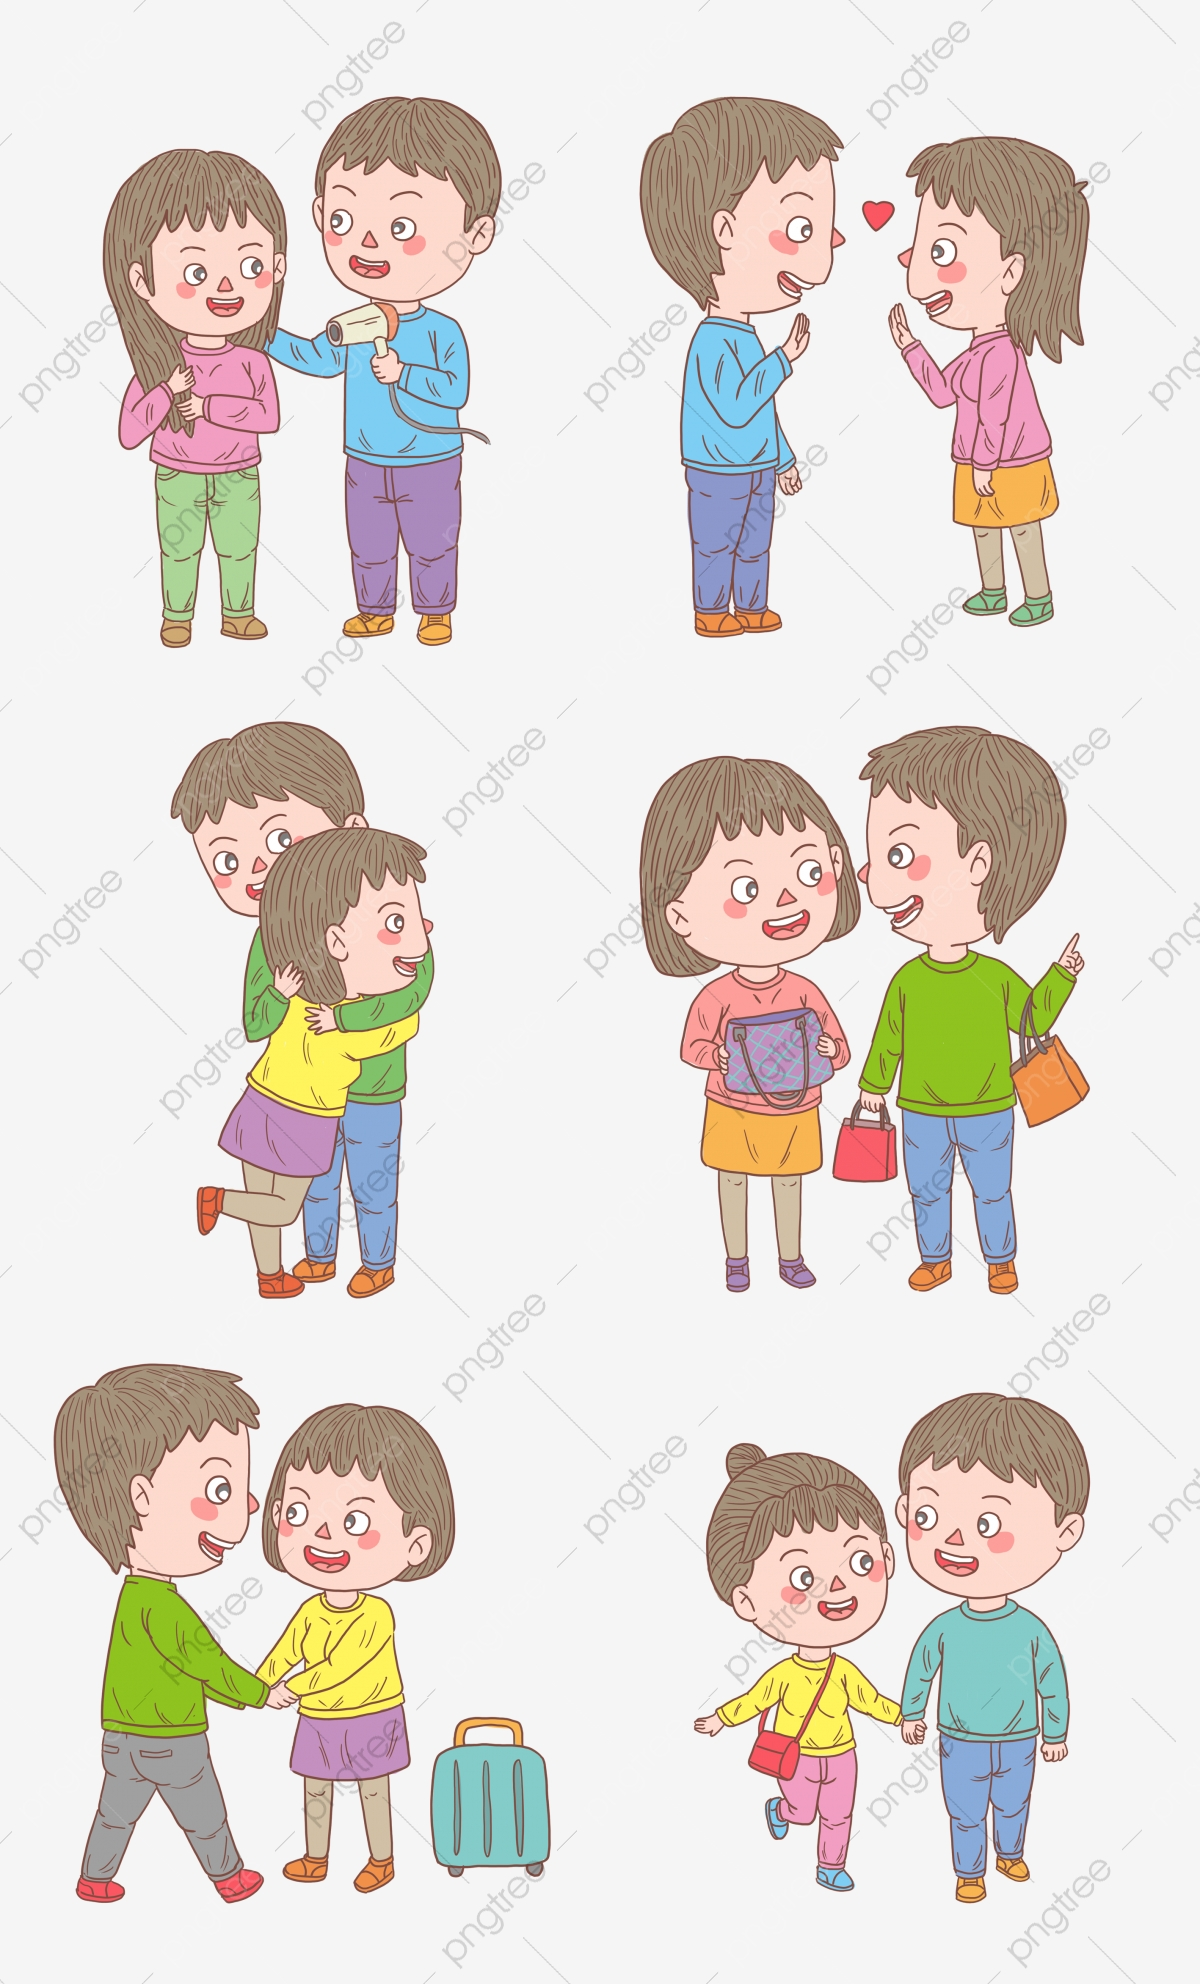 Love At First Sight Png Images Vector And Psd Files Free Download On Pngtree